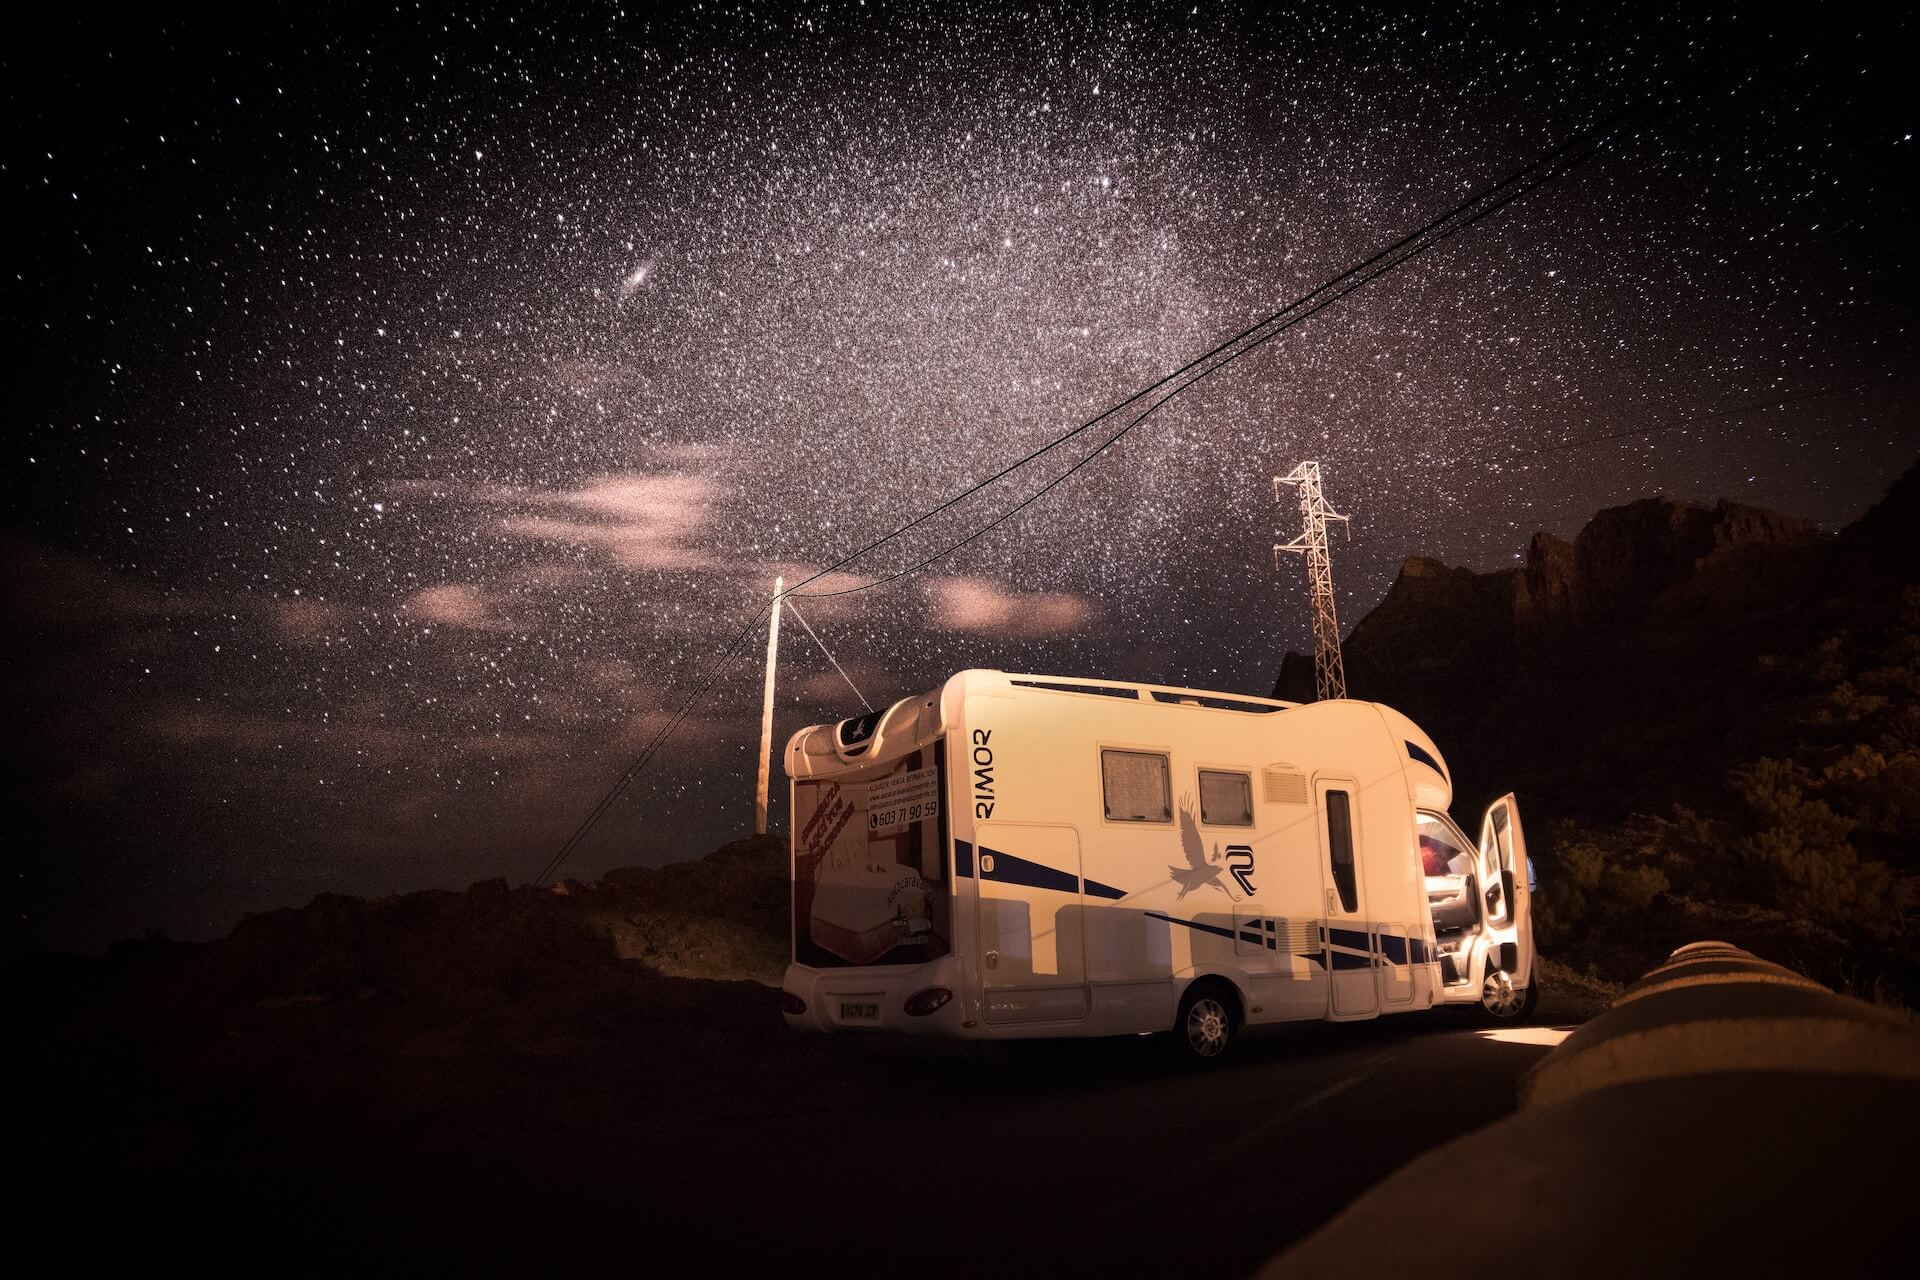 What Is the Best Way to Get RV Mobile Internet on My Phone?